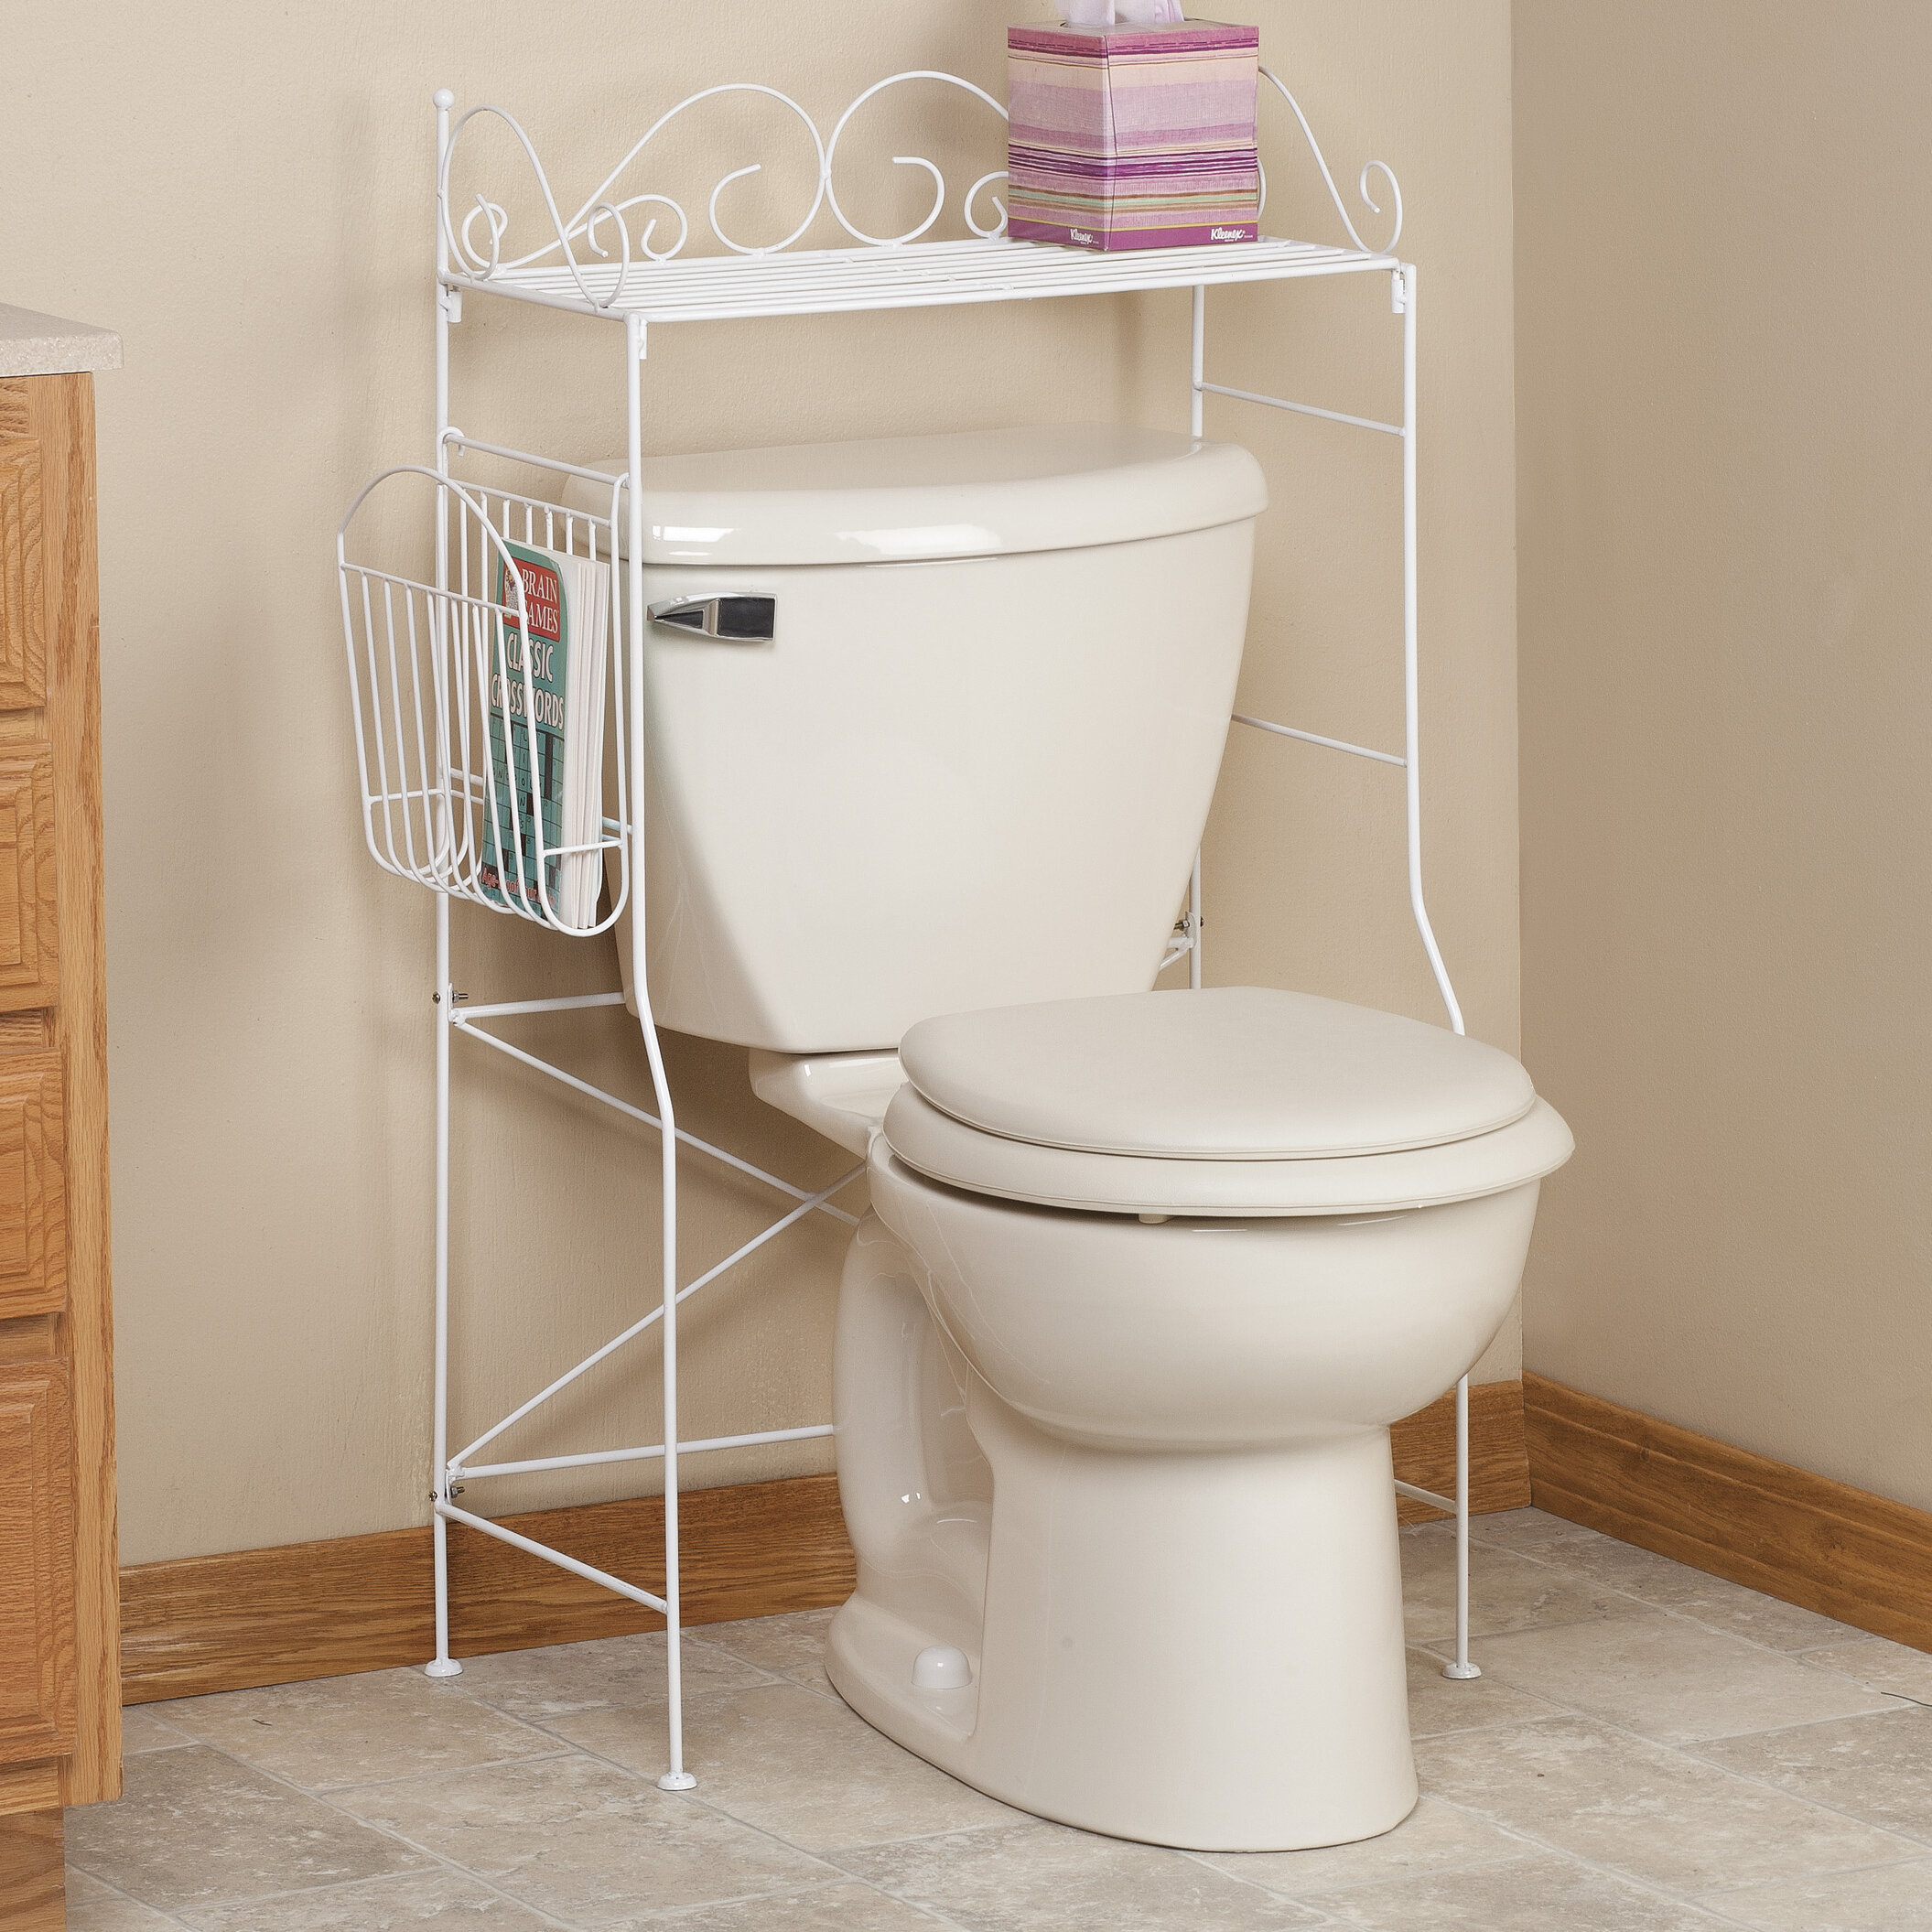 Toilet Tissue Tower by Oakridge Accents Miles Kimball